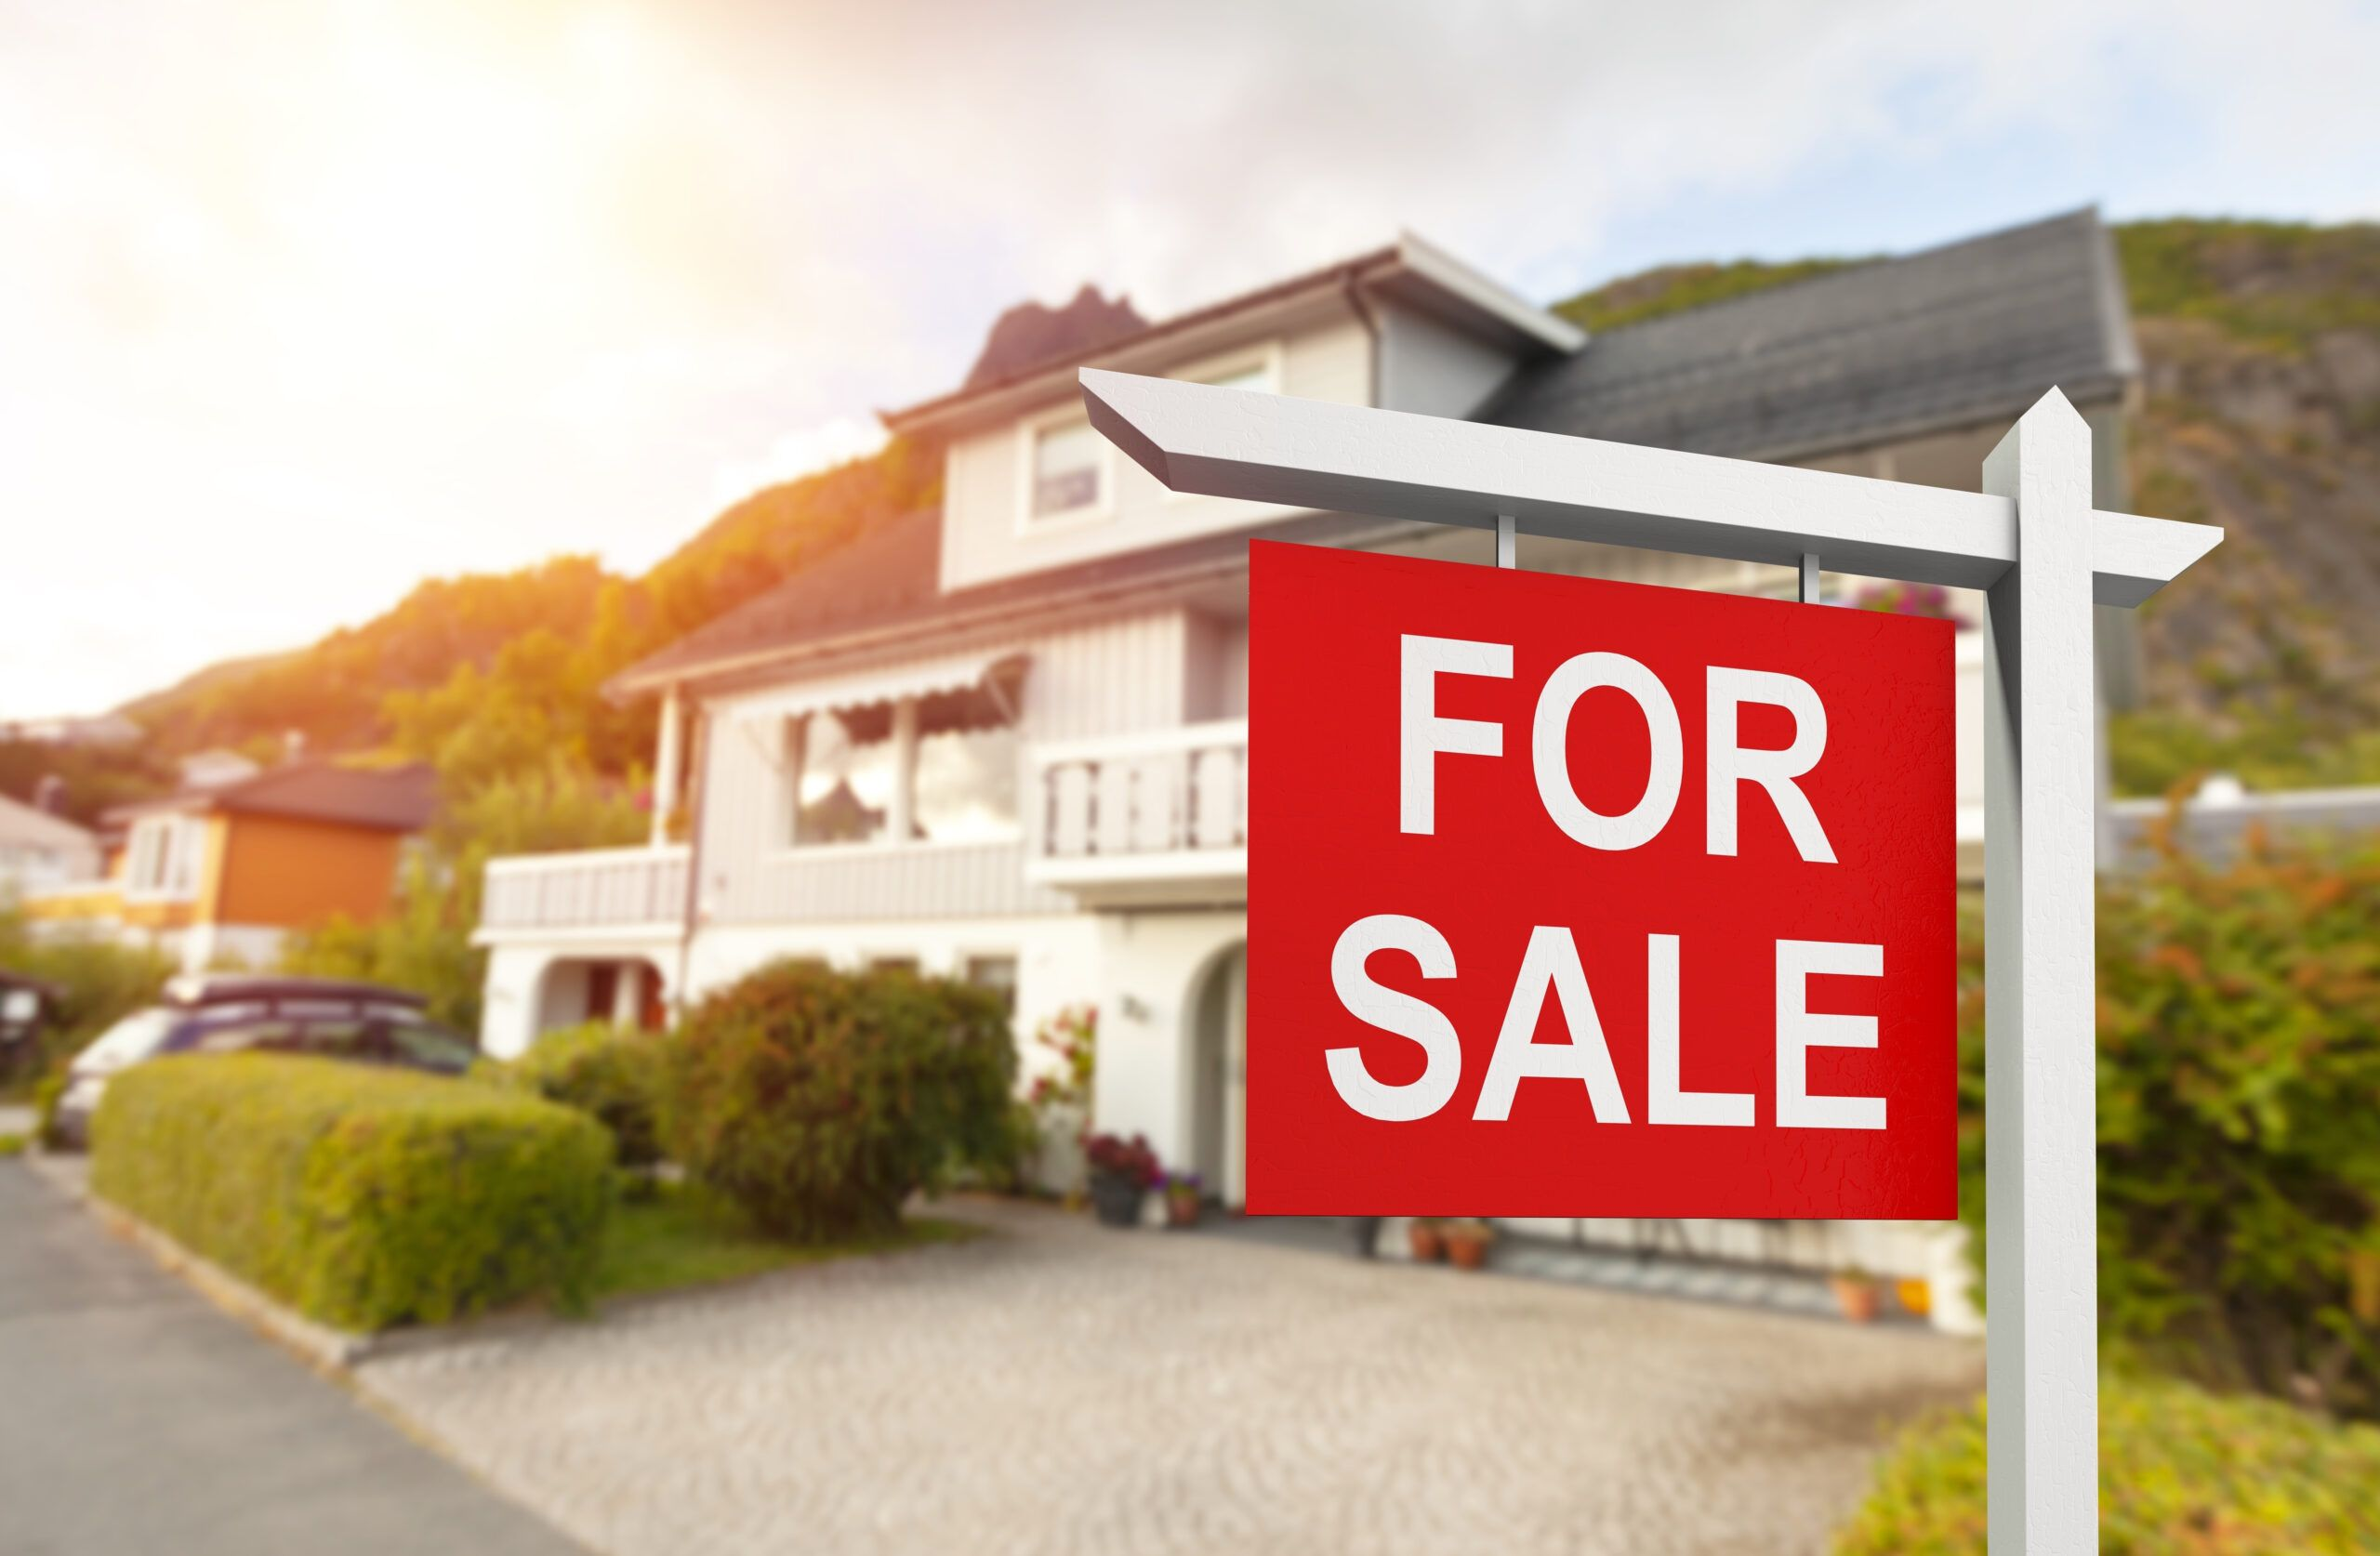 Home Selling Checklist: What To Do Before Selling Your House